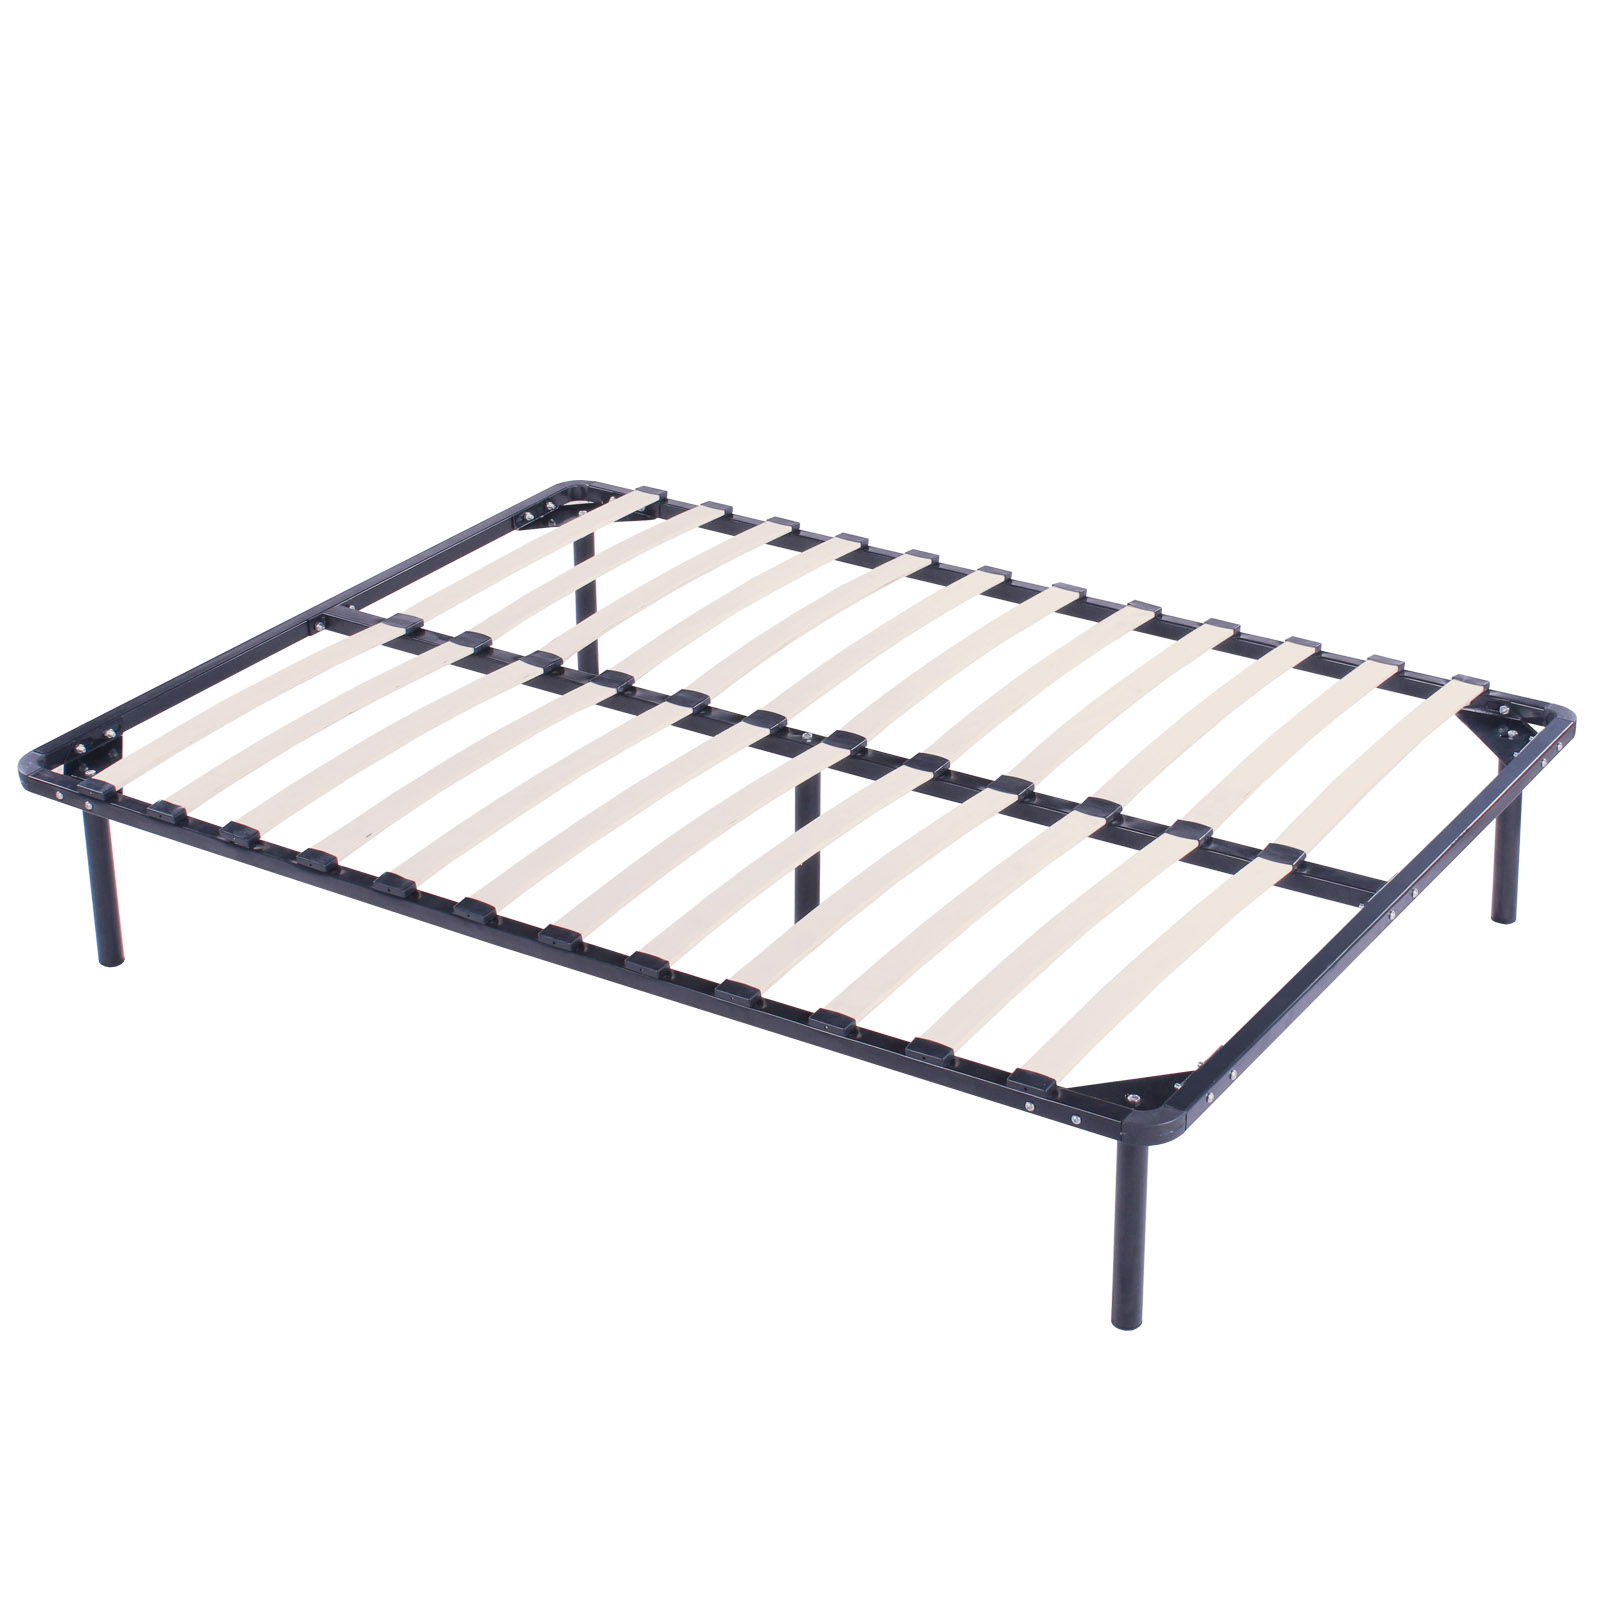 Full Size Wood Slats Metal Bed Frame Platform Mattress